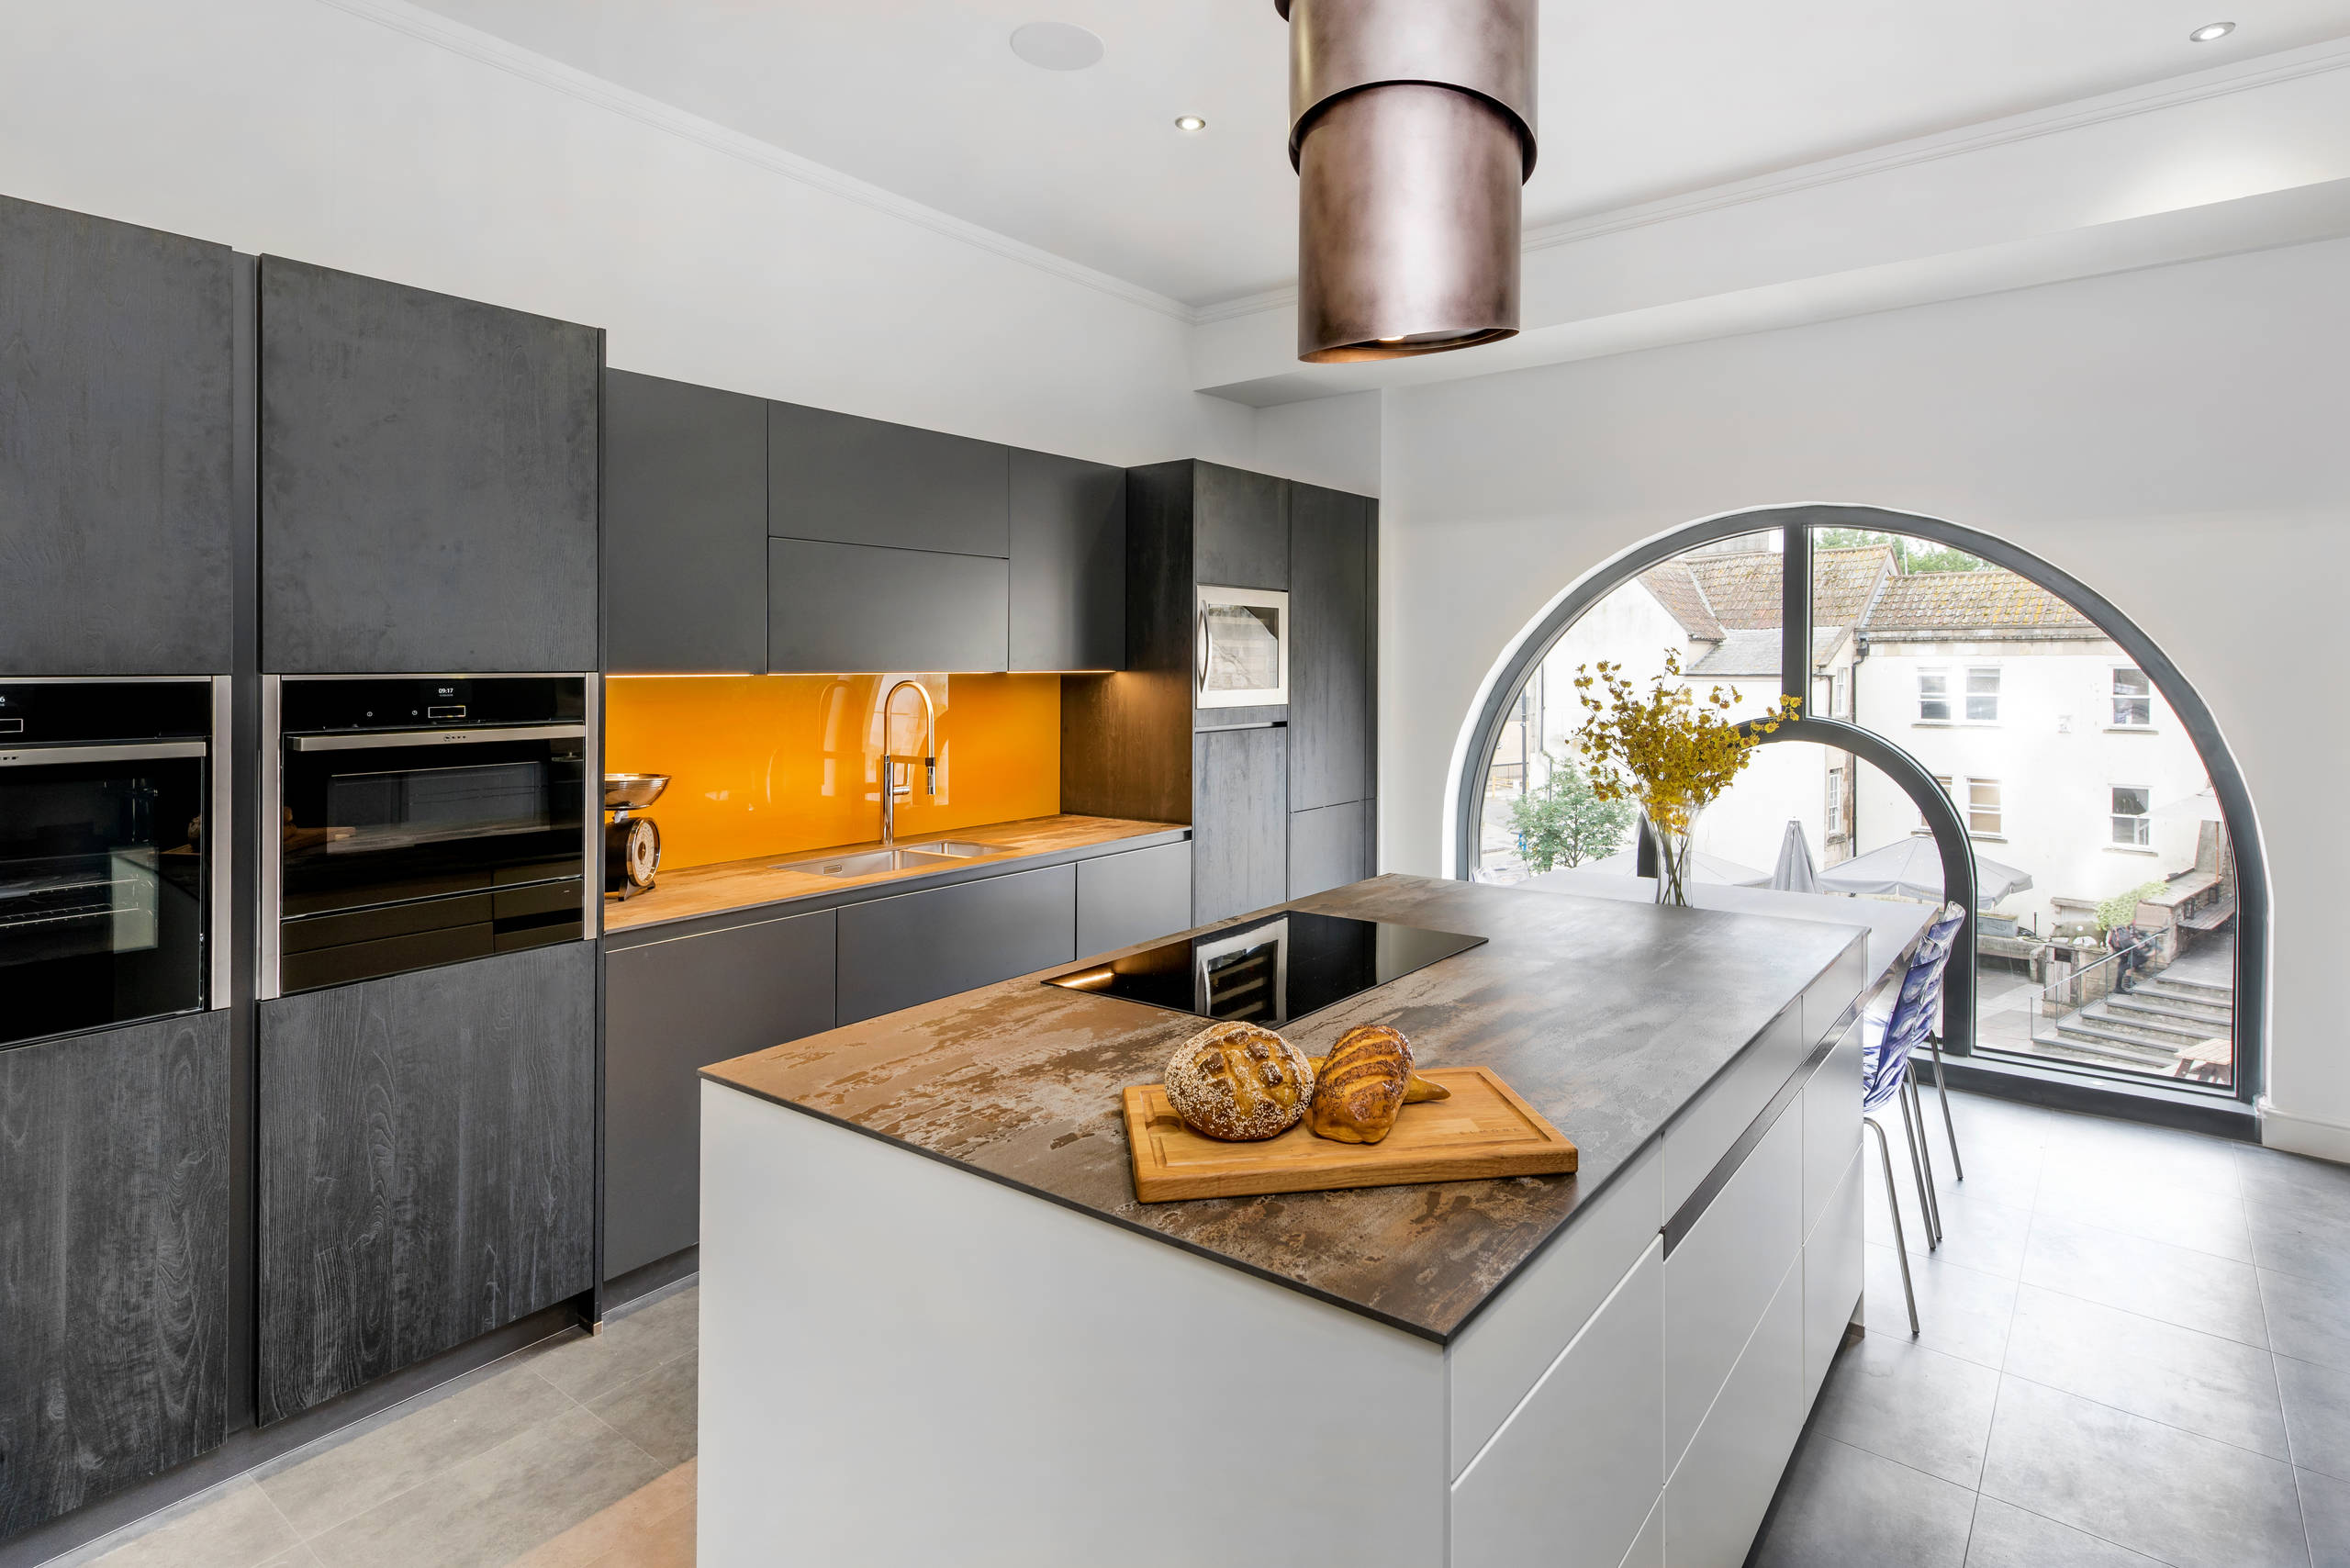 75 Beautiful Kitchen With Black Cabinets And Yellow Backsplash Pictures Ideas May 2021 Houzz